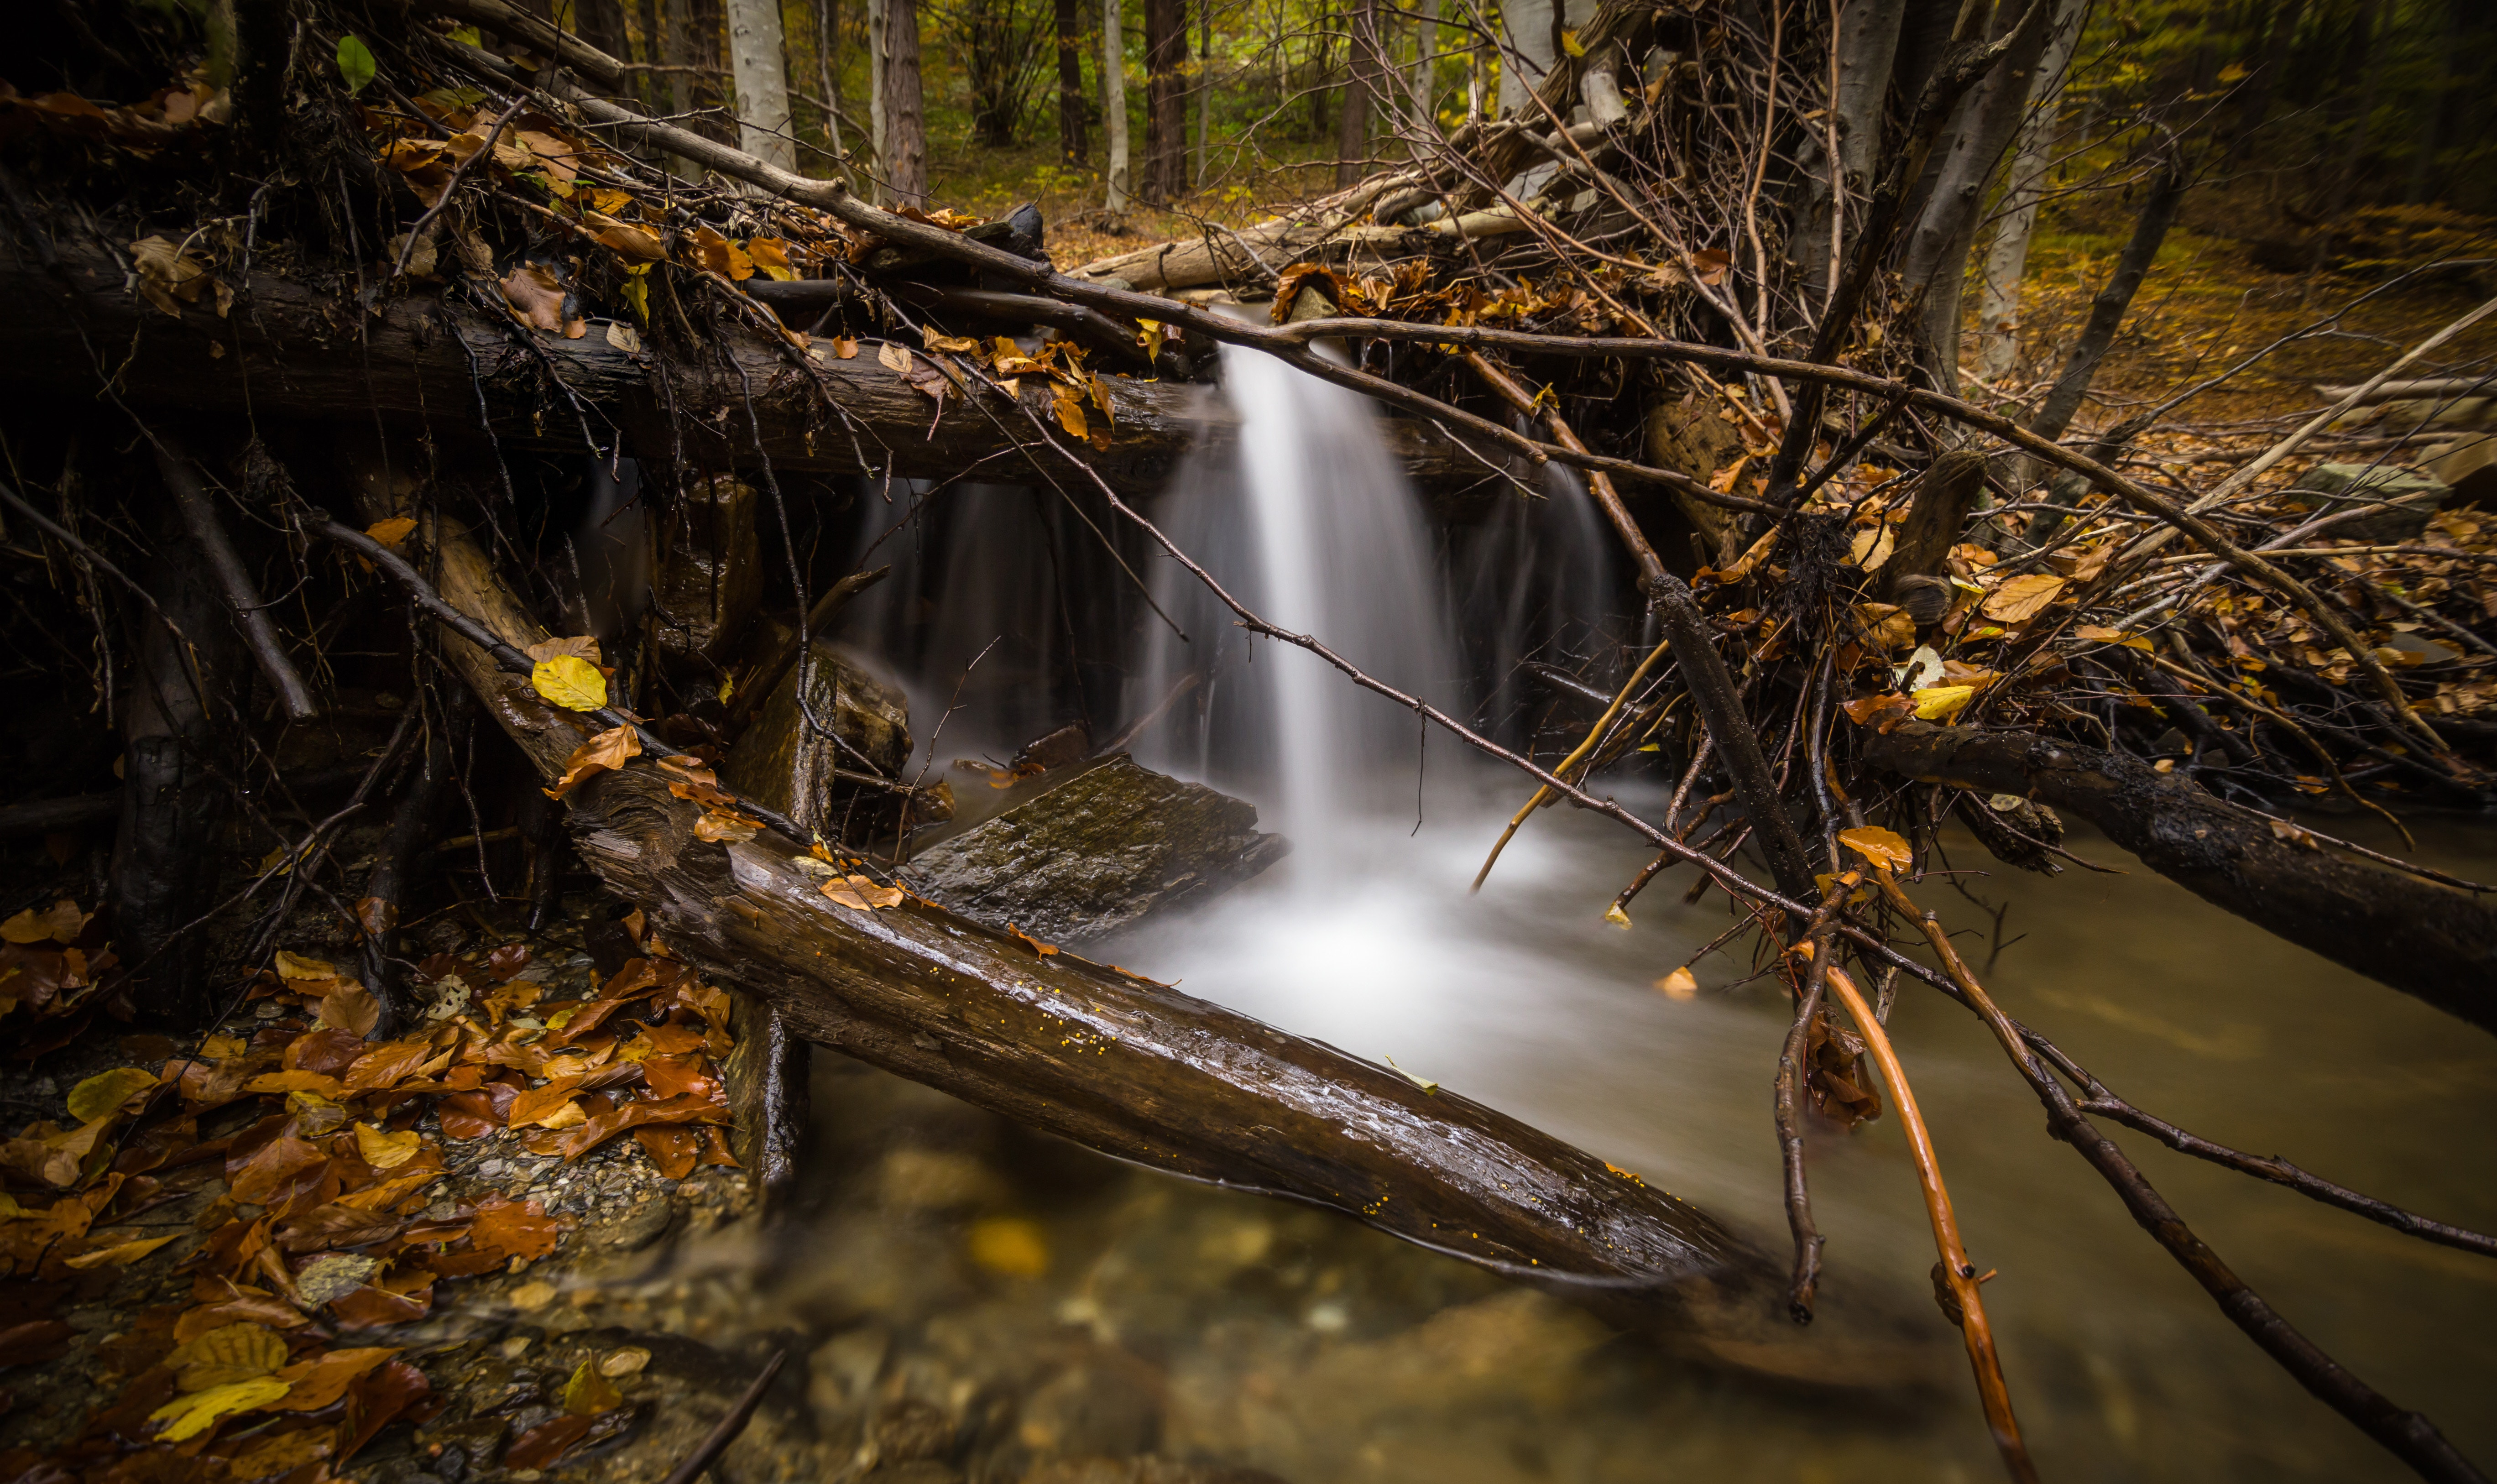 Time lapse photography of falls surrounded by trees